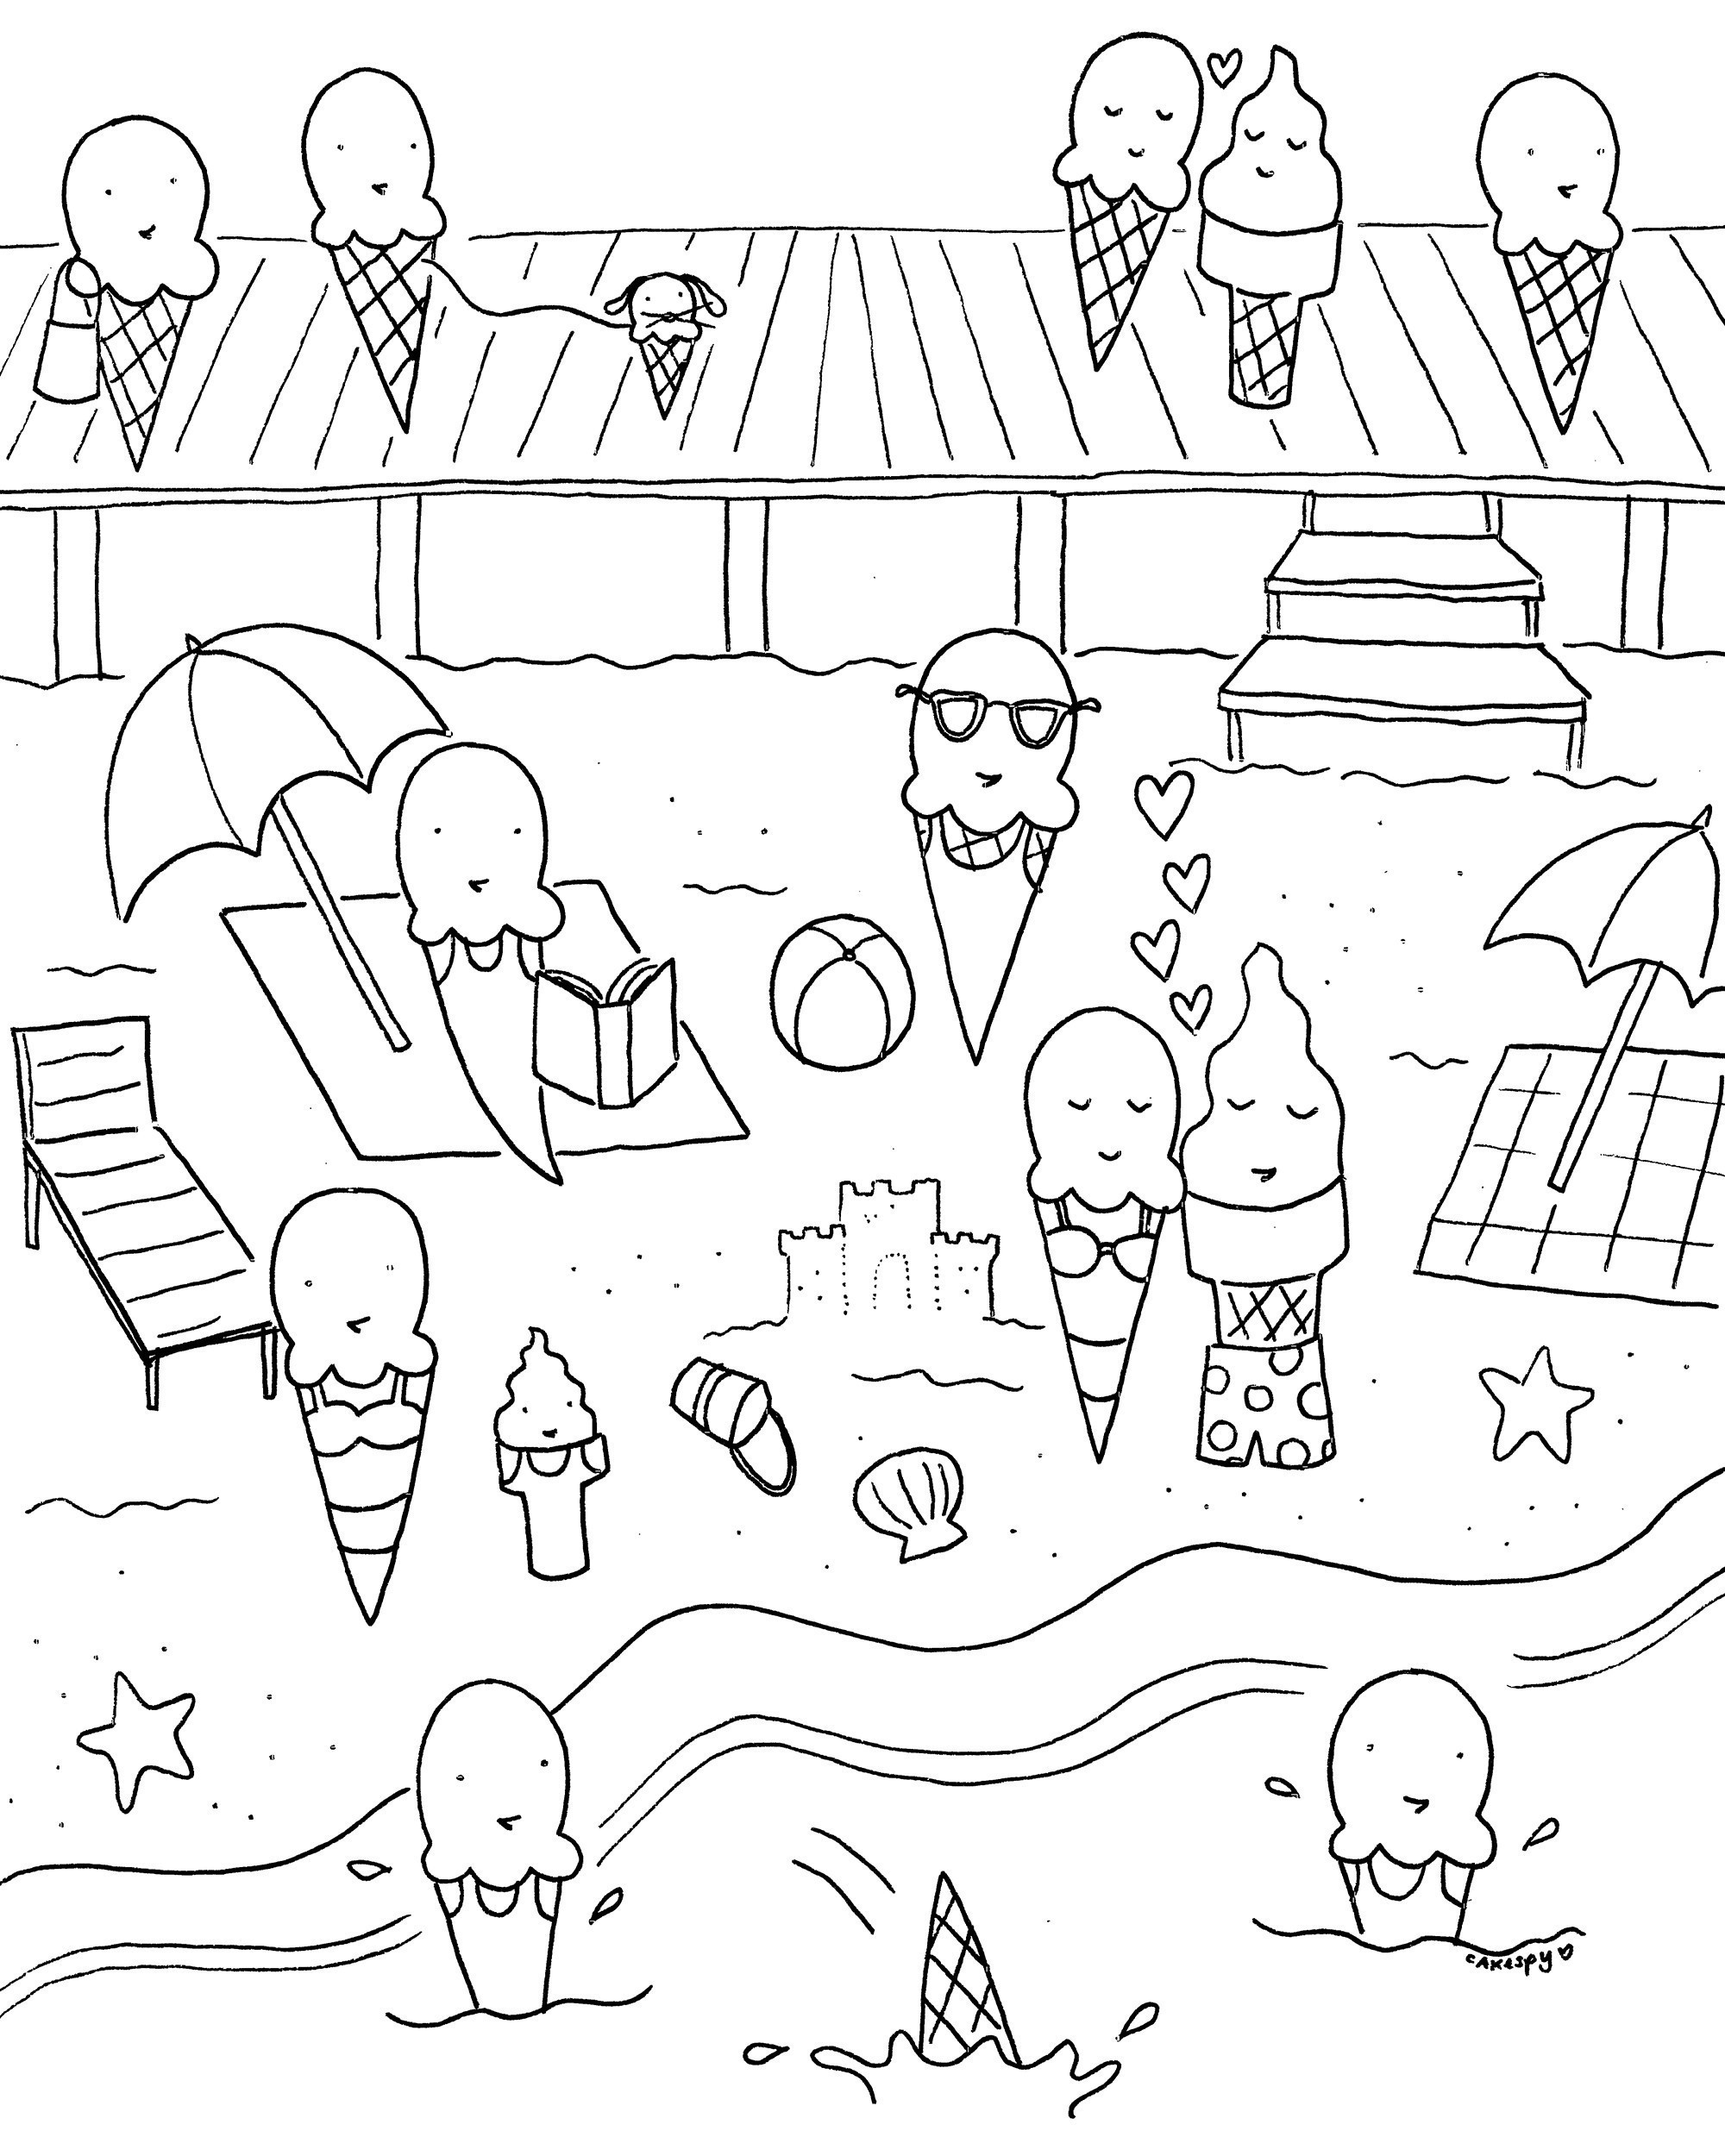 Beach Coloring Pages Printable New Beach Coloring Pages To Print New - Free Printable Summer Coloring Pages For Adults